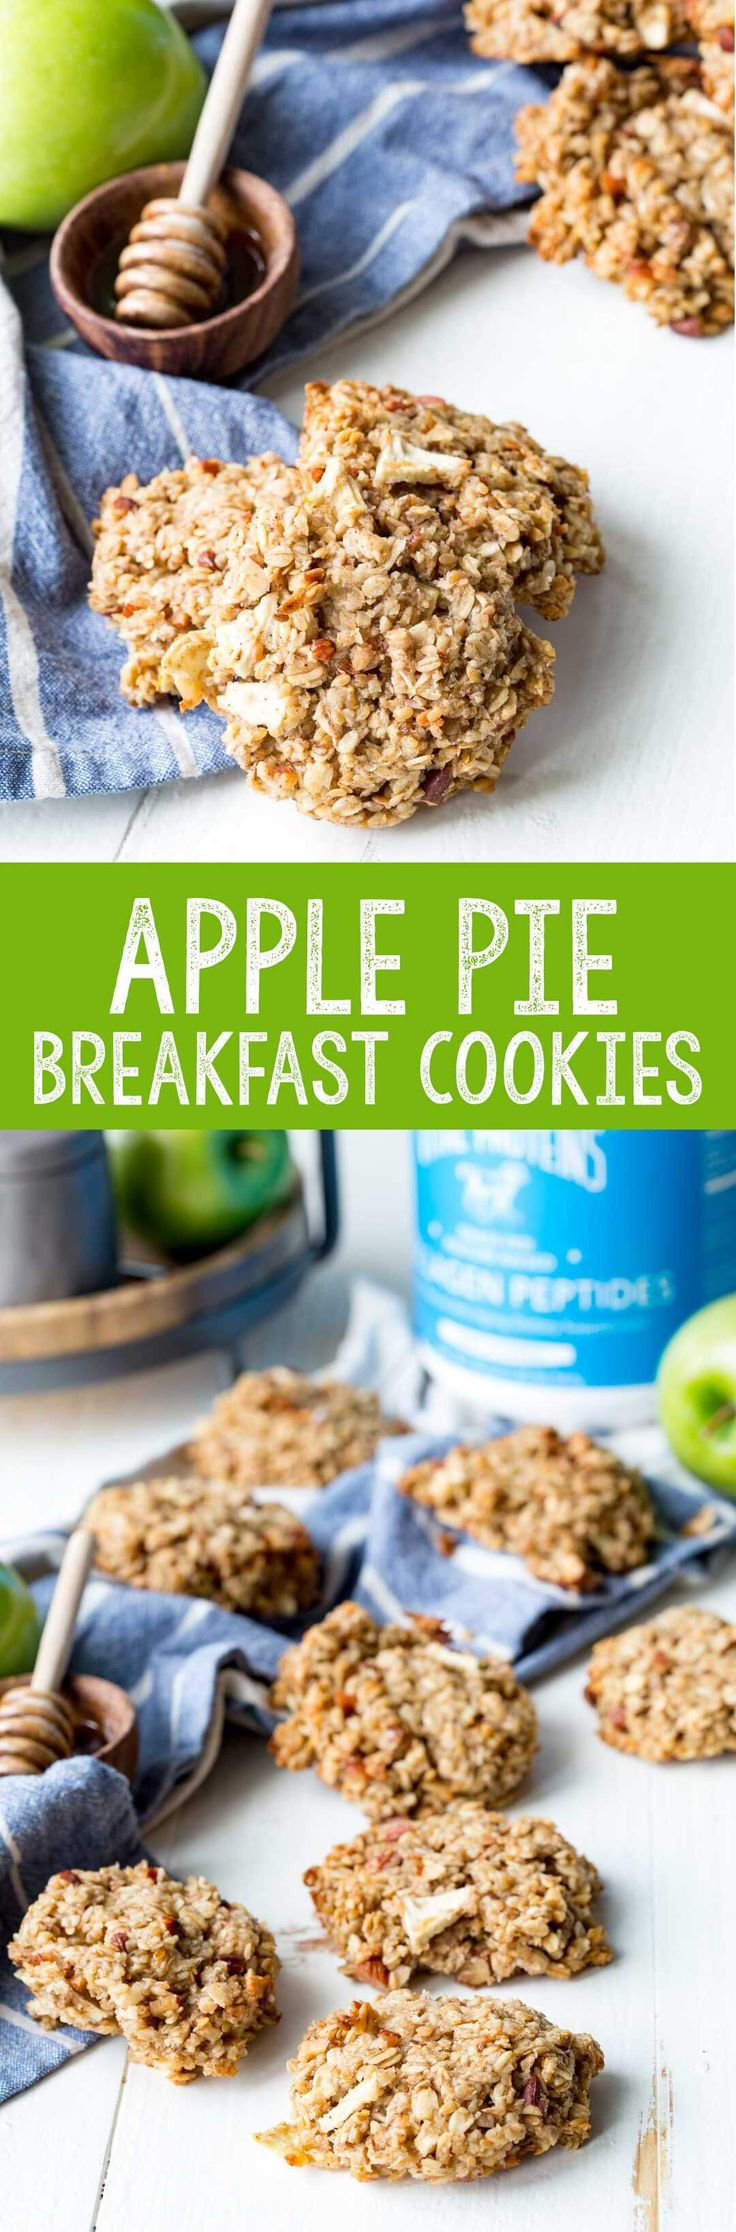 Even my kids loved these Apple Pie Breakfast Cookies. And the added protein is a huge plus. #ad - Eazy Peazy Mealz